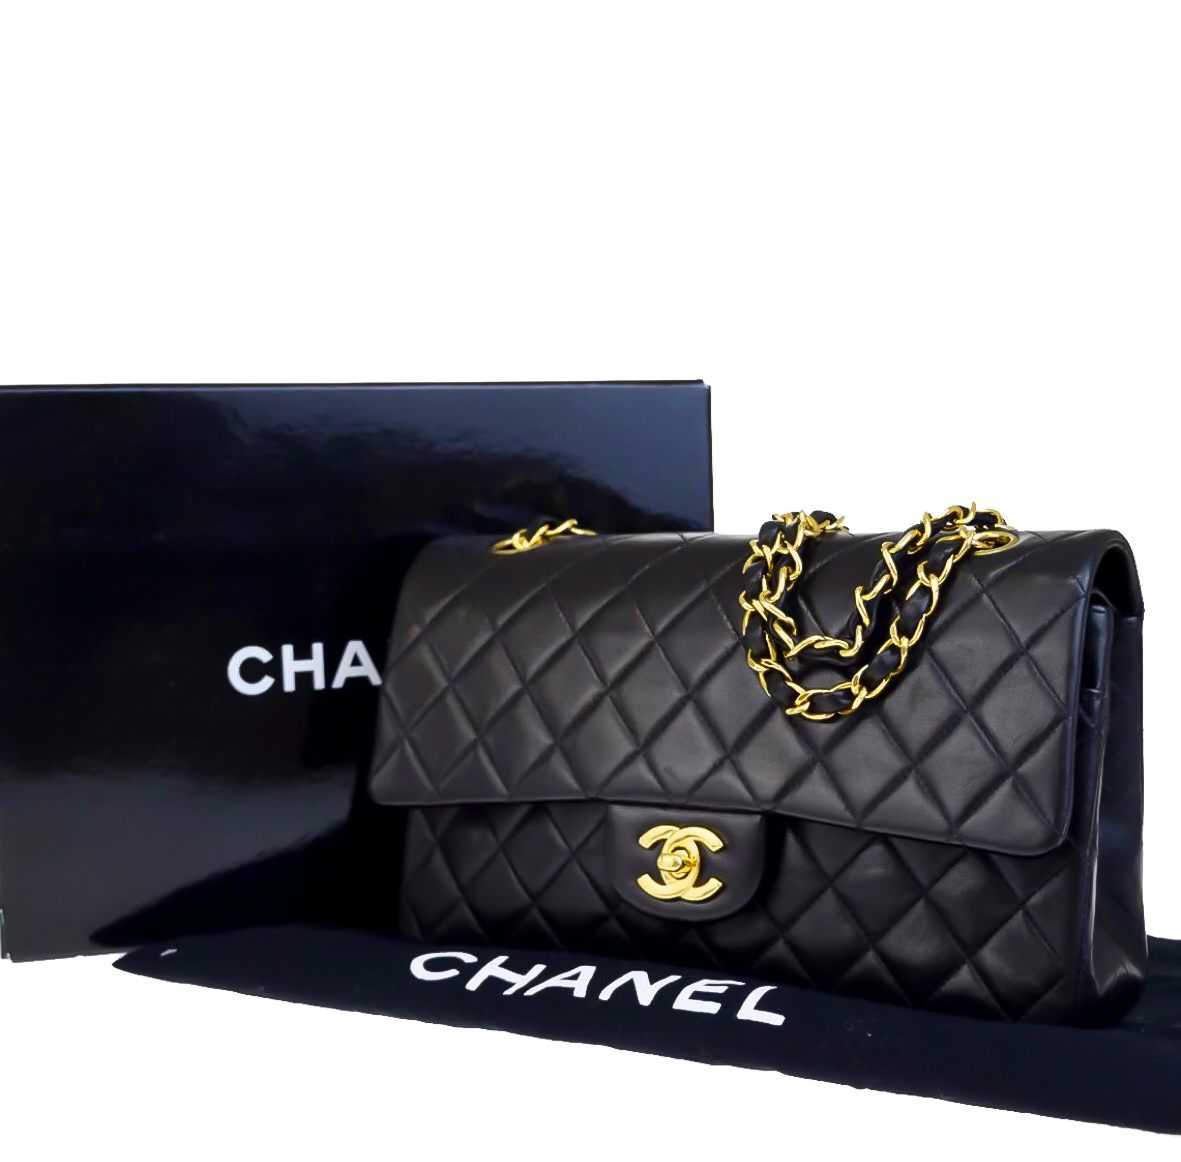 3594df6cc7b6 Chanel Quilted Lambskin 255 Vintage Classic Double Flap Bag | HEWI London